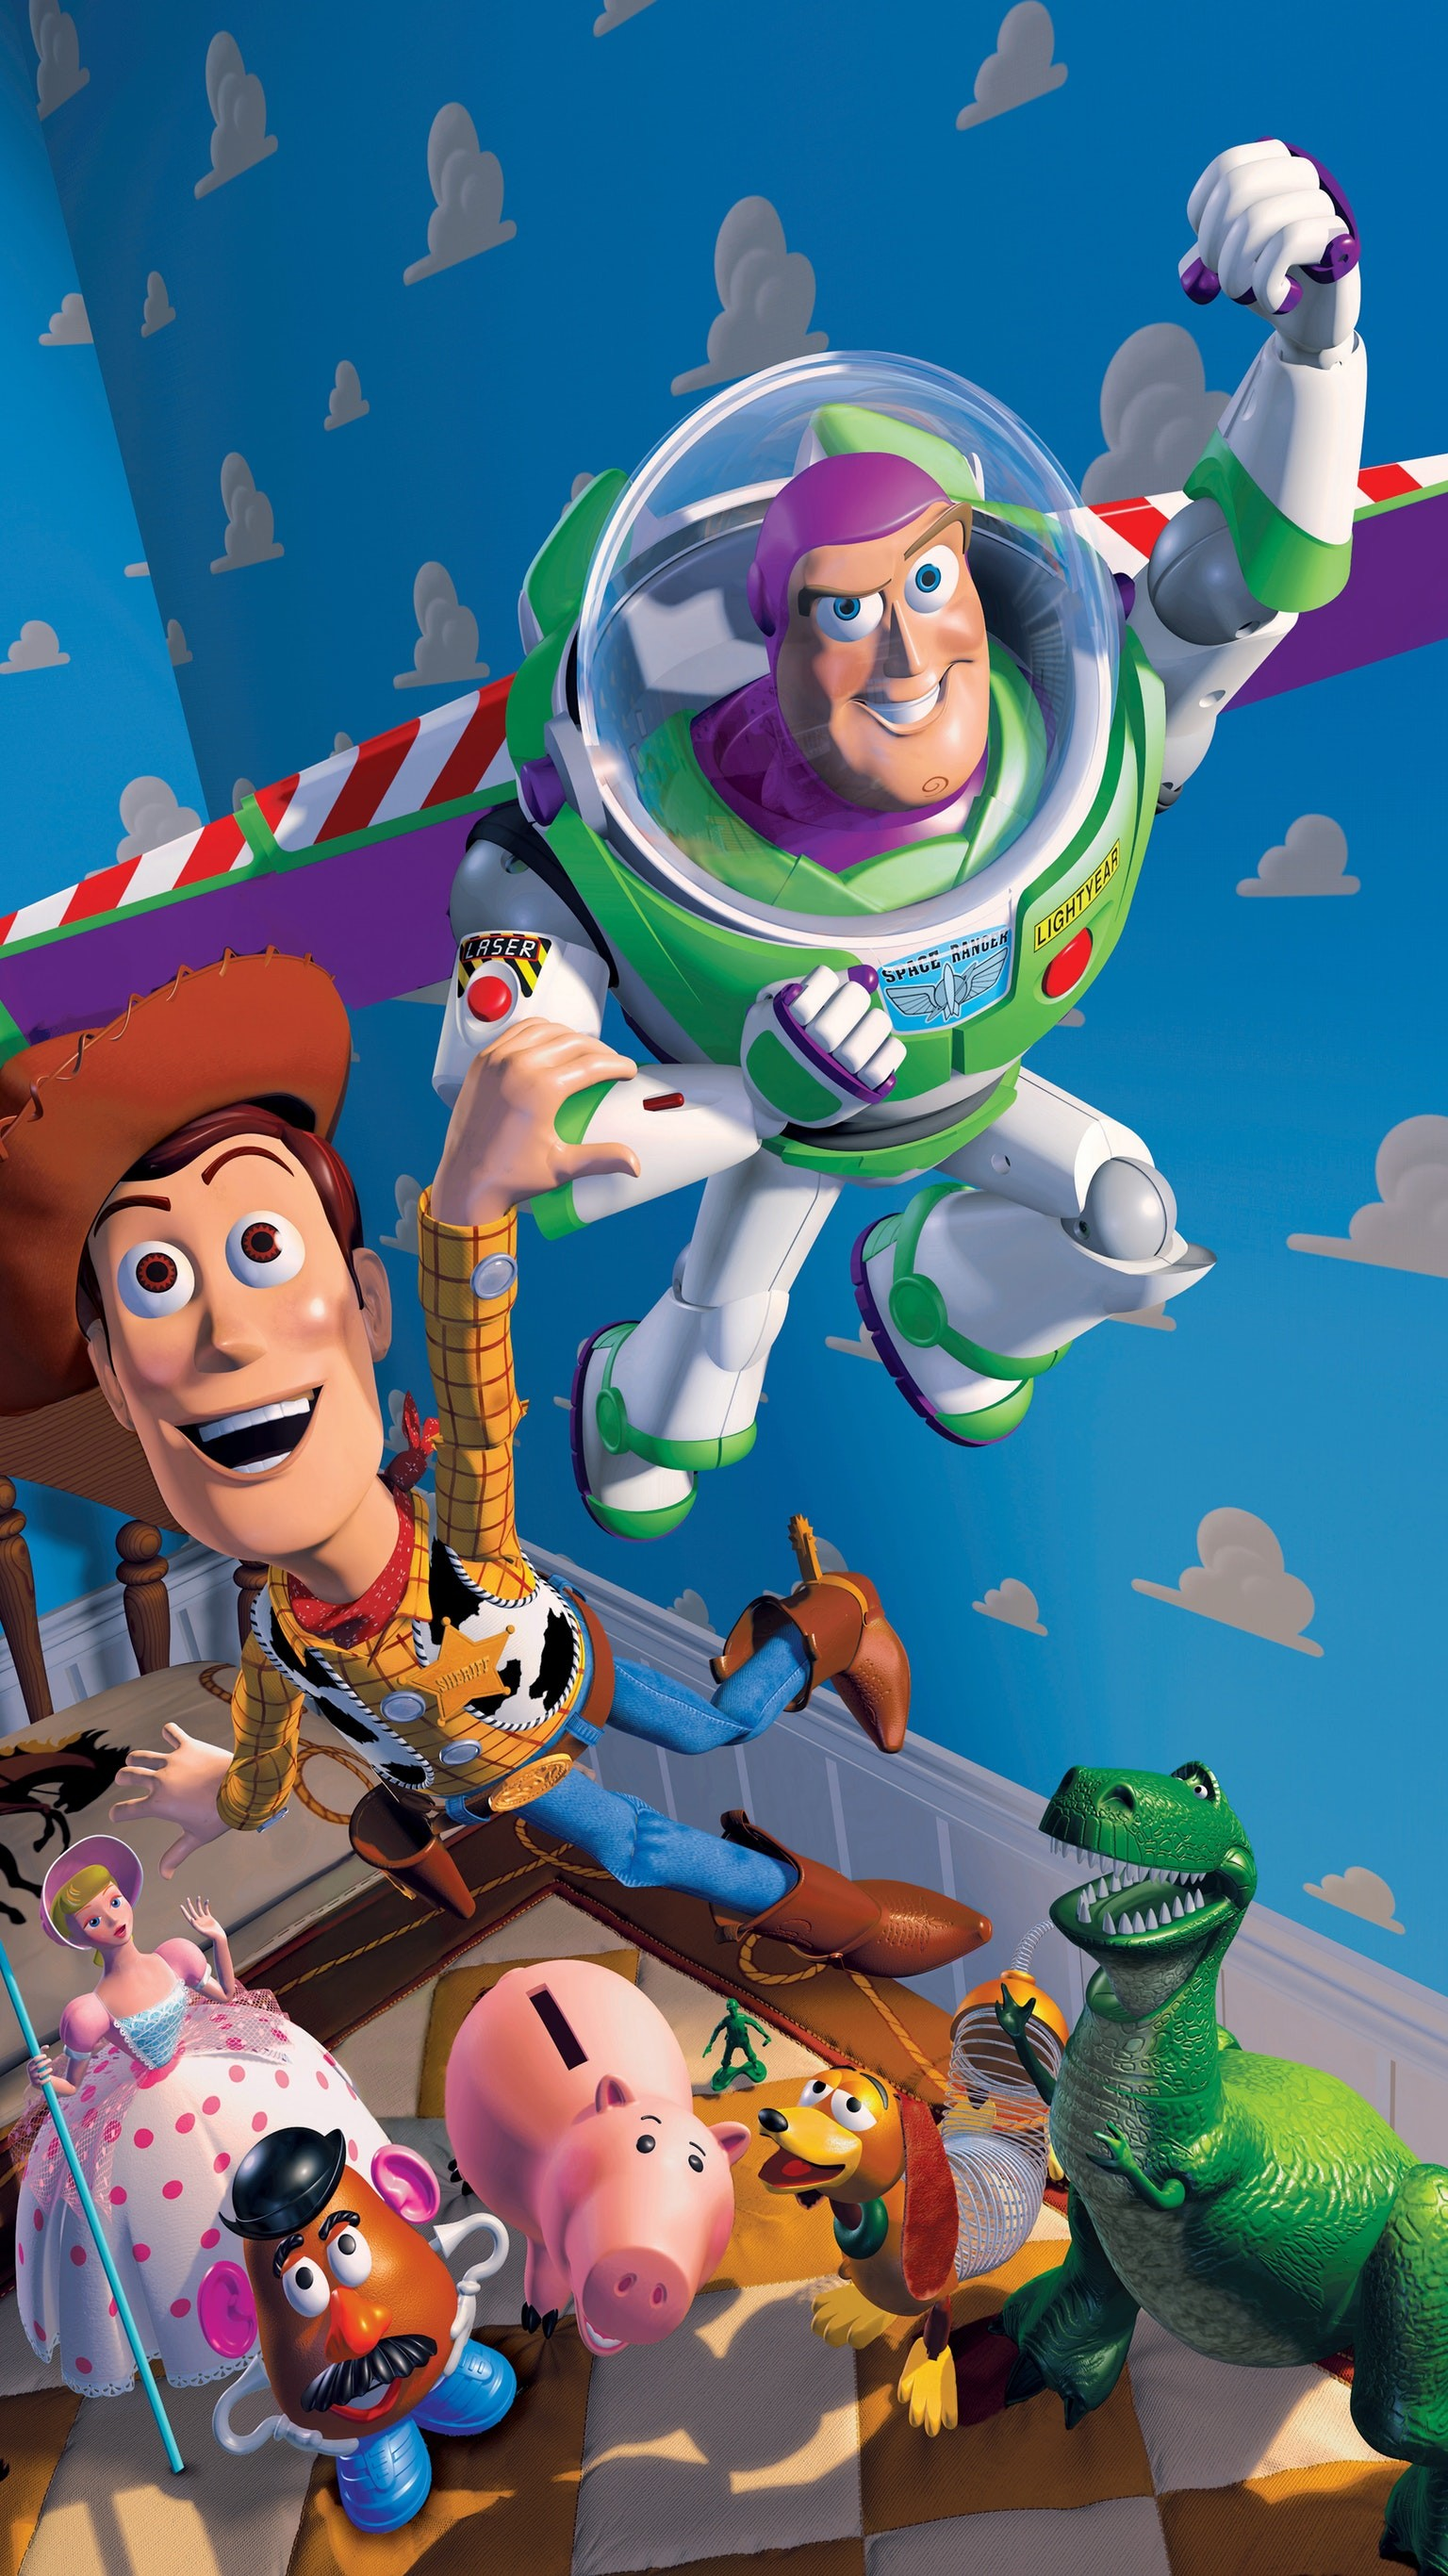 Toy story wallpapers 60 pictures - Toy story wallpaper ...